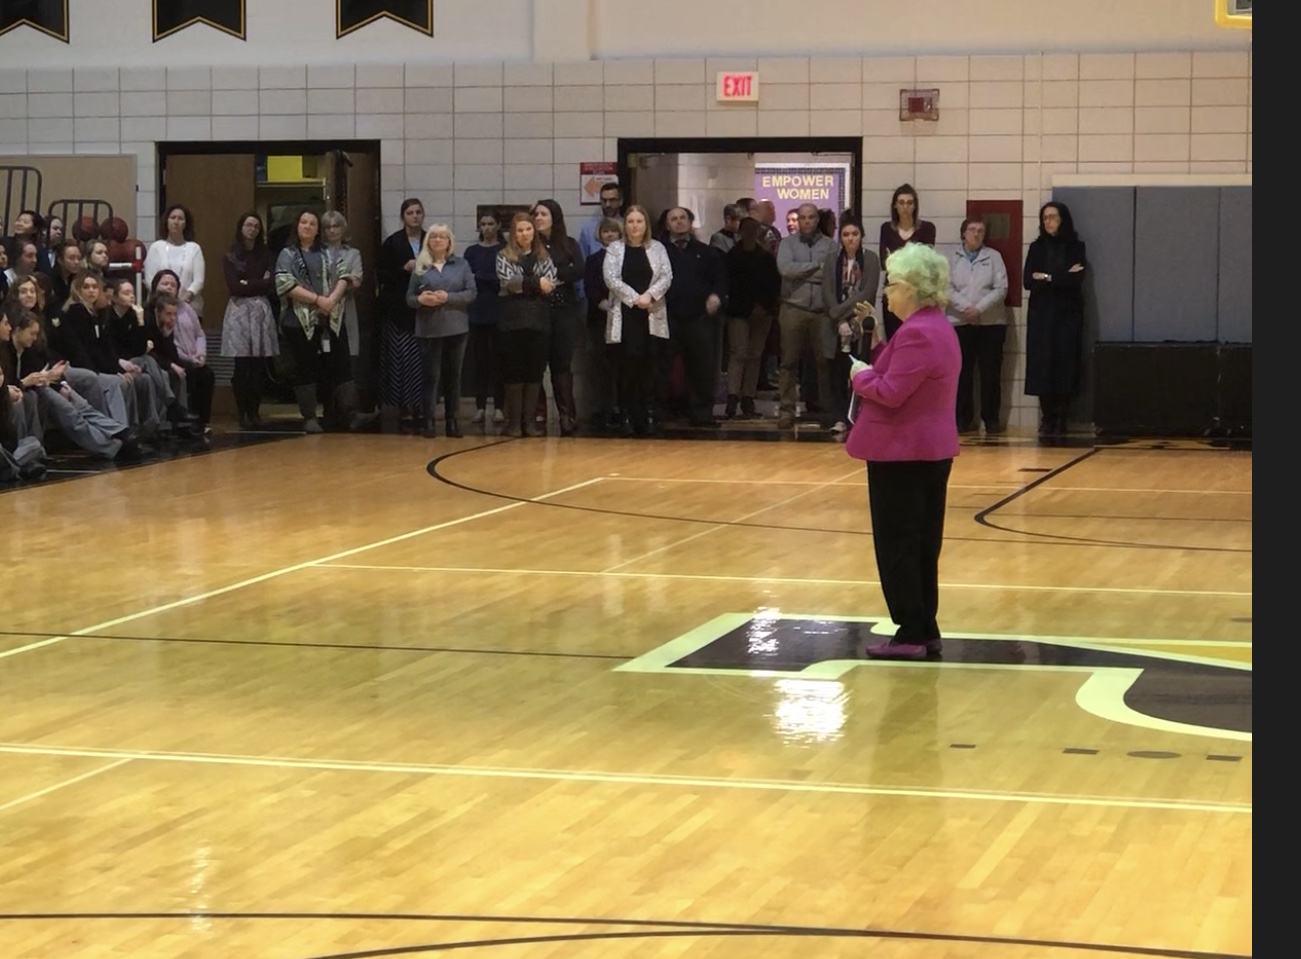 Principal Cindy Mann announces her retirement at Community Homeroom.